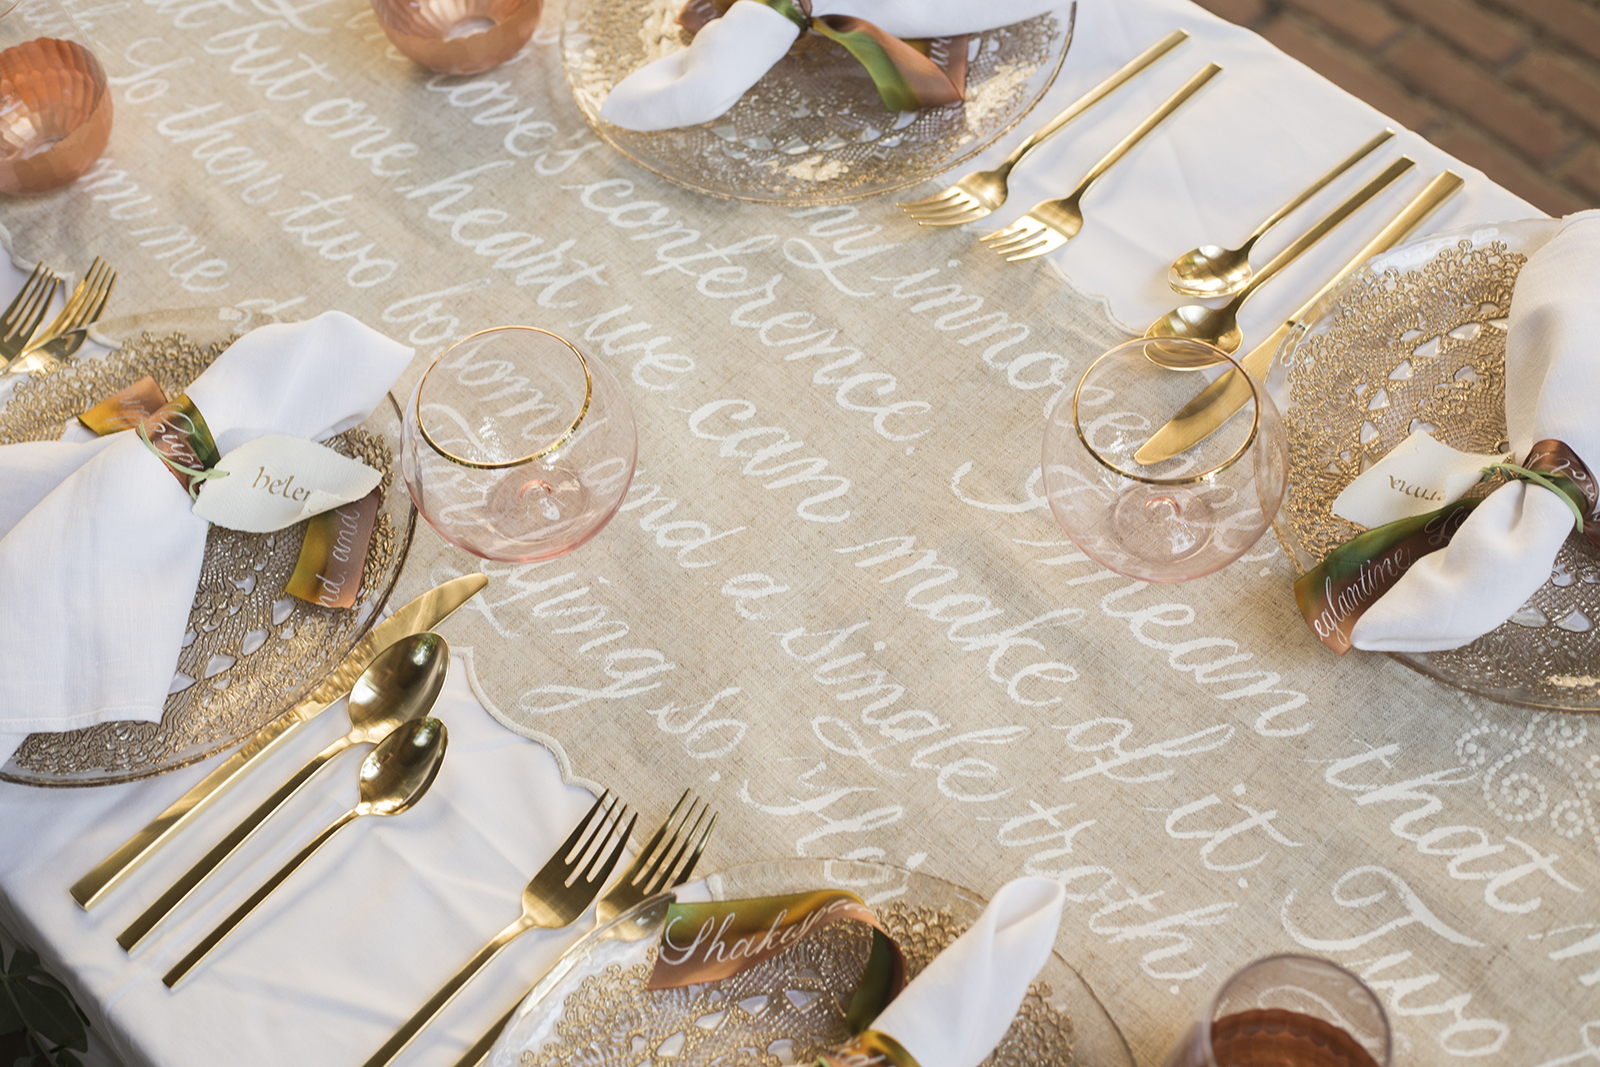 Midsummer Night's Dream inspired wedding shoot // scalloped table runner hand-painted with calligraphy // historic Carolingian calligraphy in rose gold on hand-made paper place card scrolls // hand-painted silk ribbons with calligraphy // paperie and calligraphy by Chavelli www.chavelli.com // photography by Rebecca Jeanson www.rjimagery.com